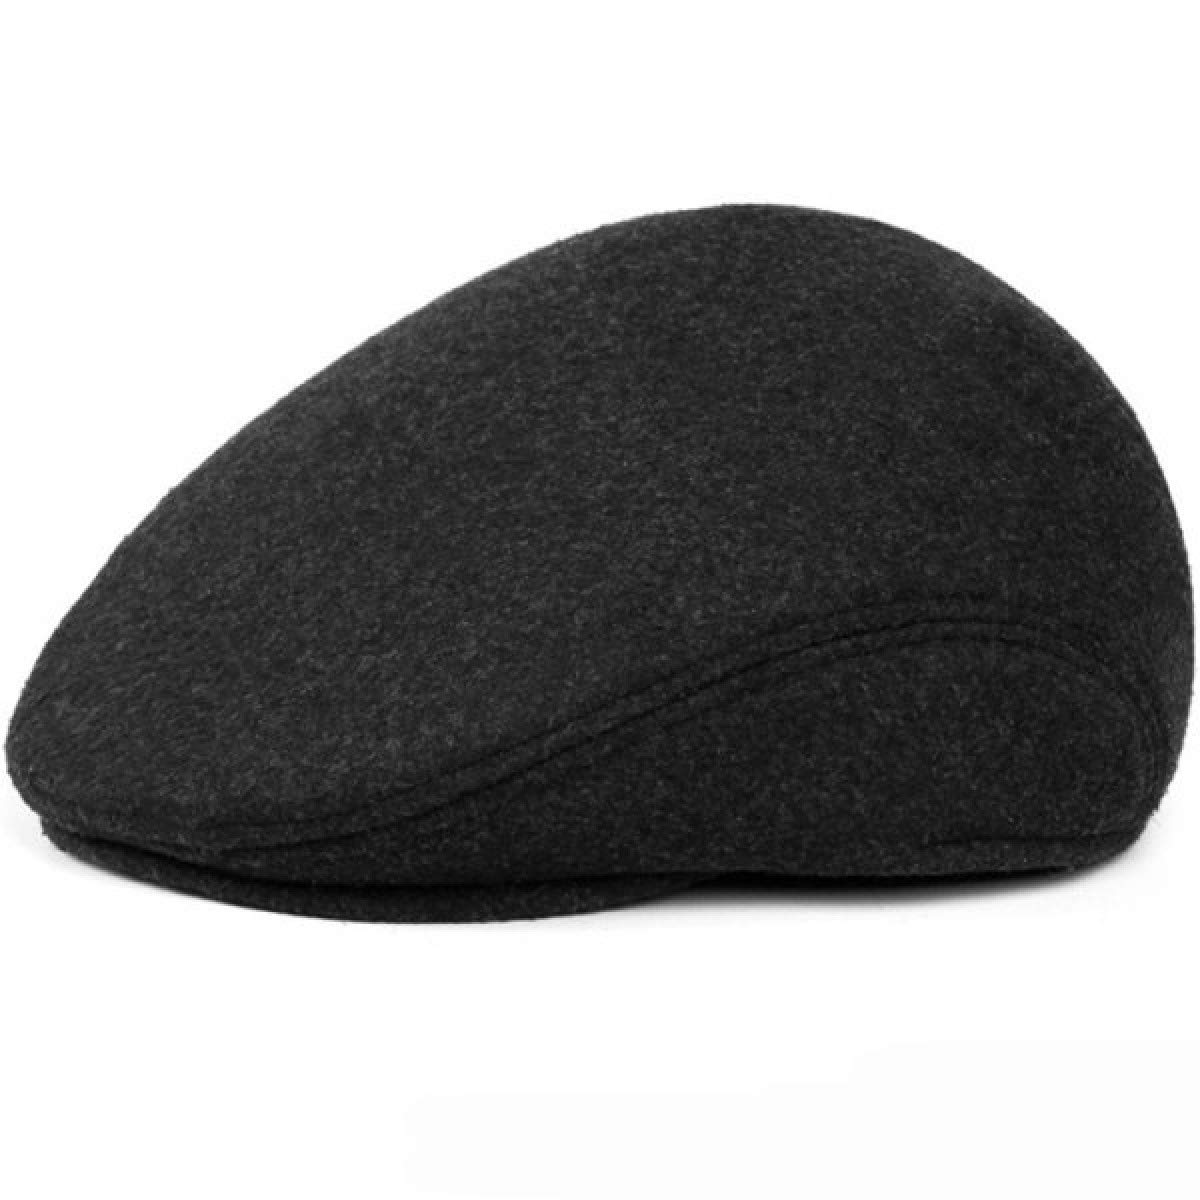 Warm Winter Hats with Ear Flap Men Retro Beret Caps Solid Black Wool Felt Hats for Men Thick Forward Flat Ivy Cap Dad Hat at Amazon Mens Clothing store: